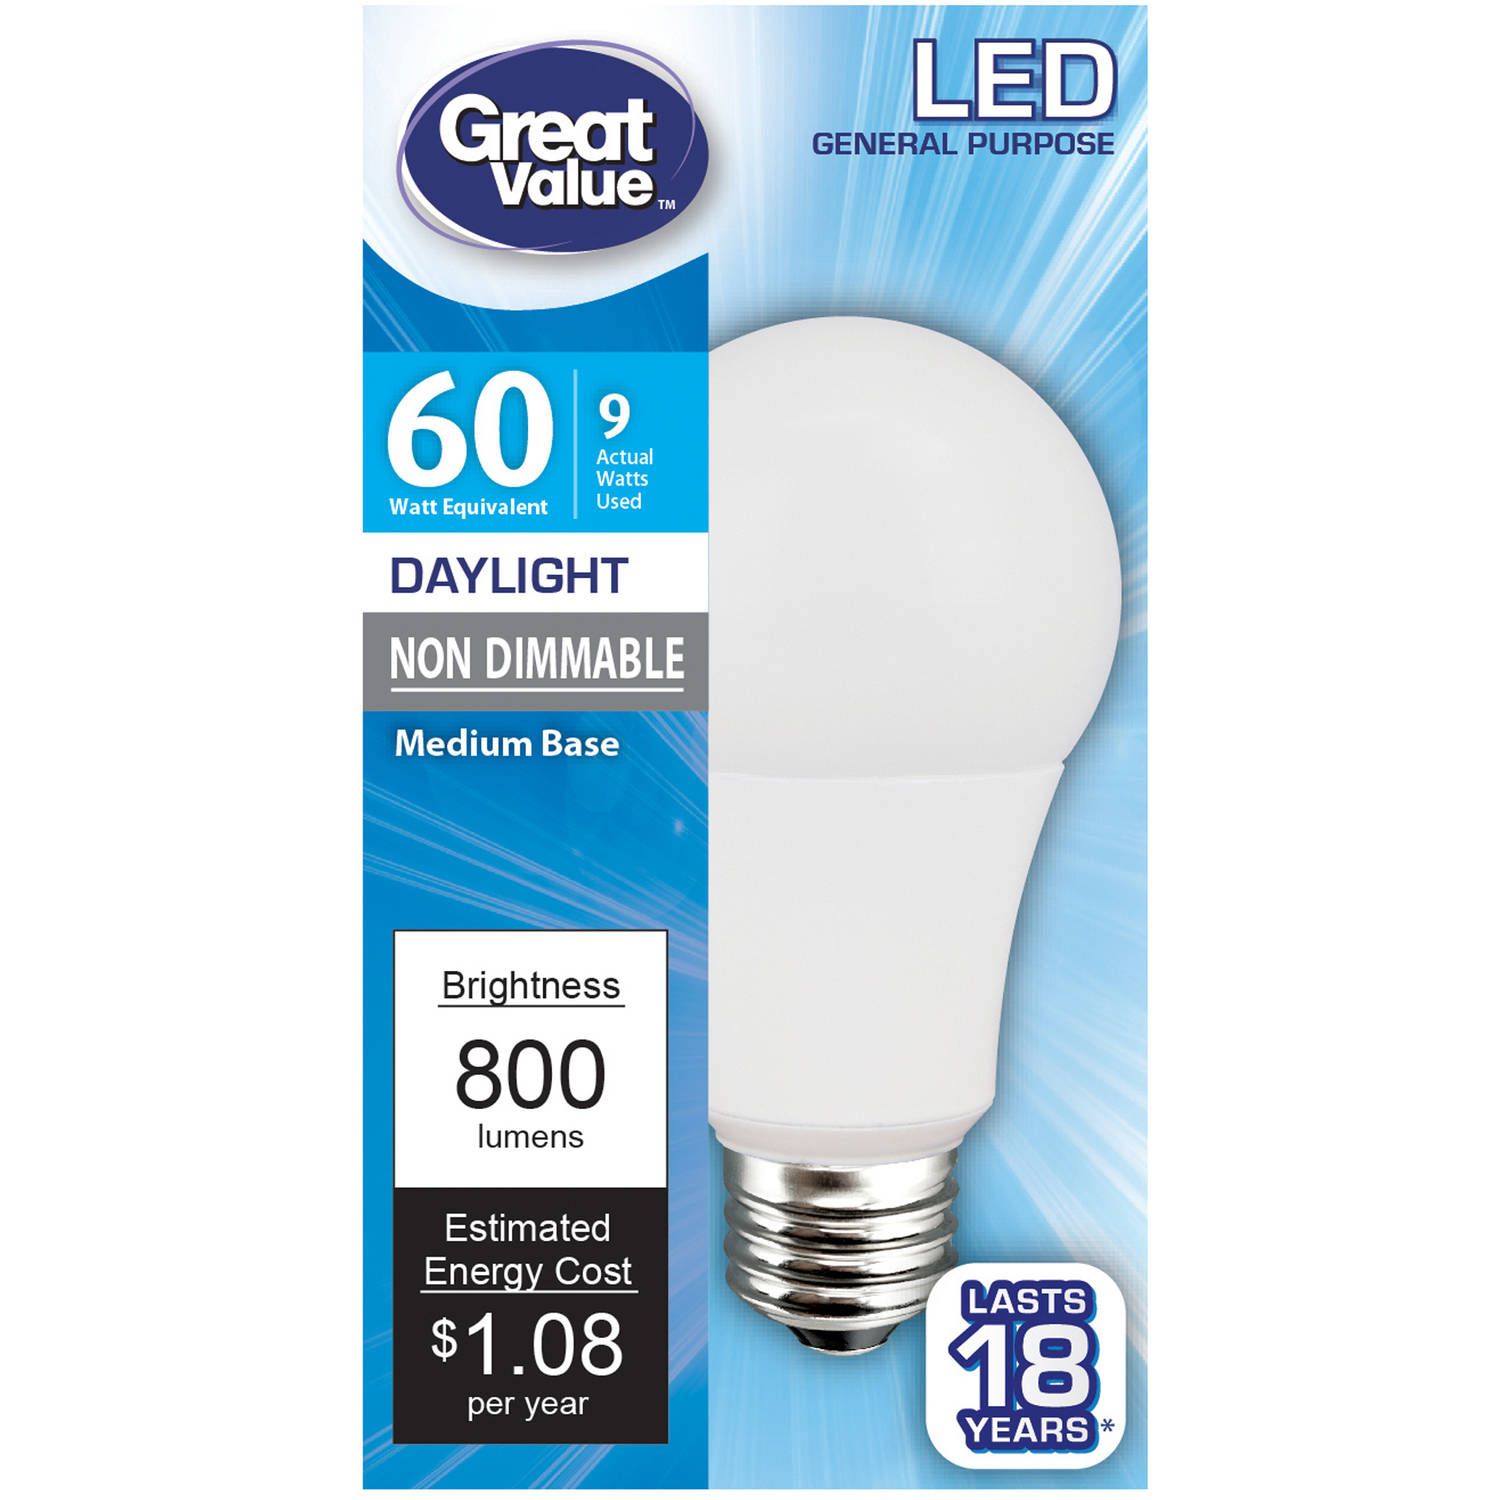 Great Value LED Light Bulb 9W (60W Equivalent) A19 (E26), Daylight ...